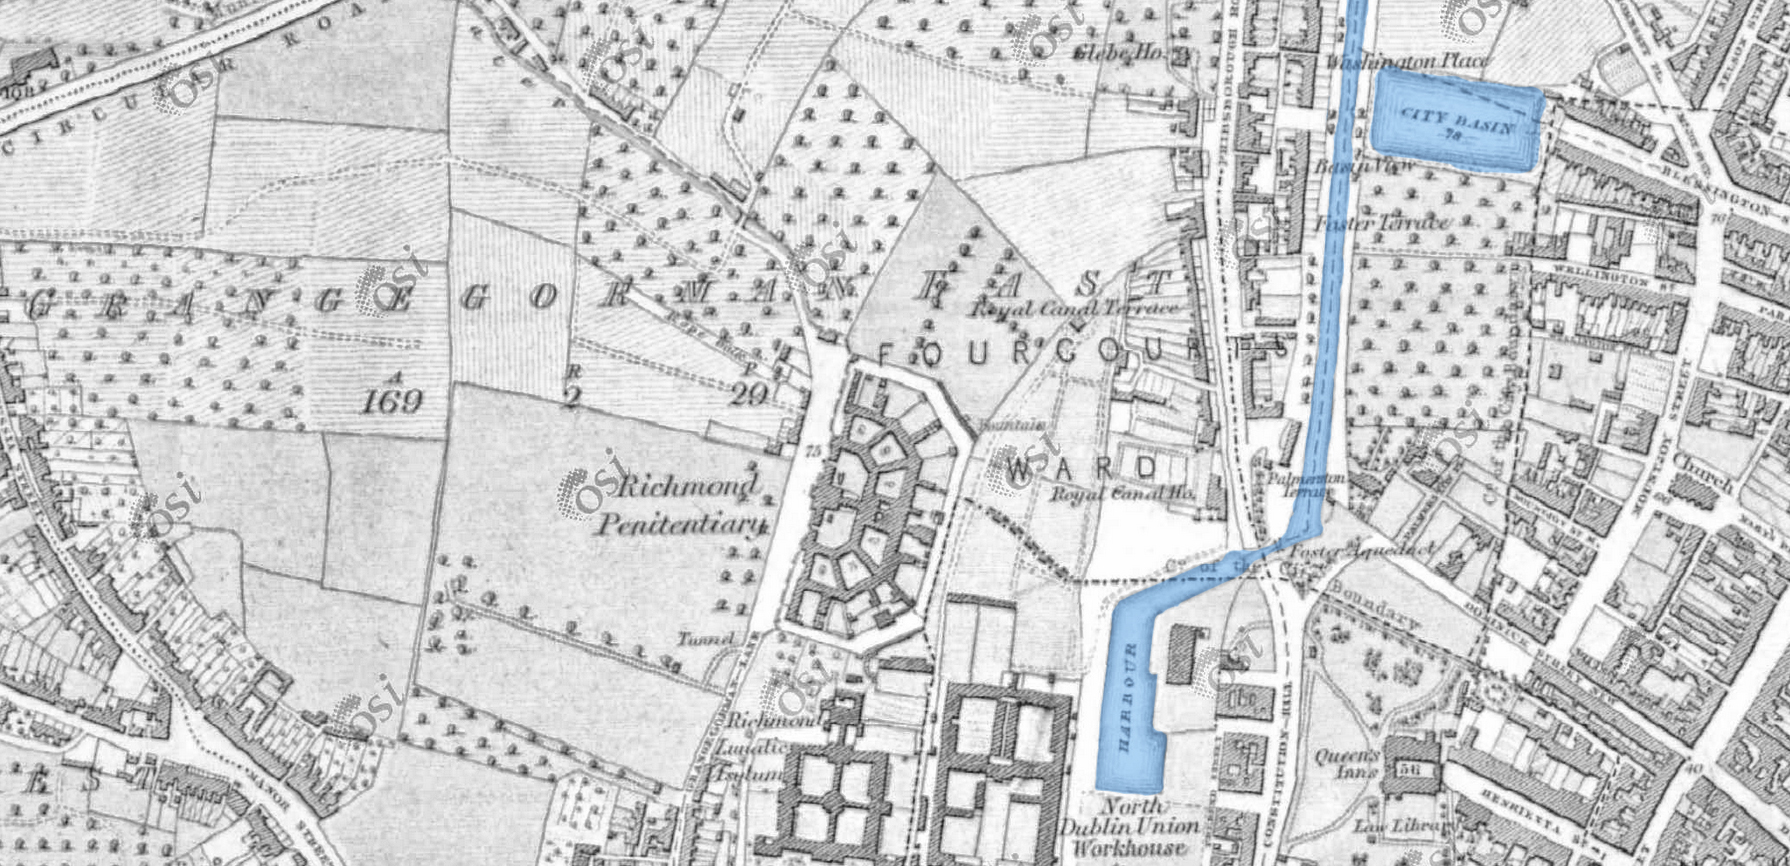 Ordinance survey Ireland 1837-1842 with the Broadstone line coloured blue